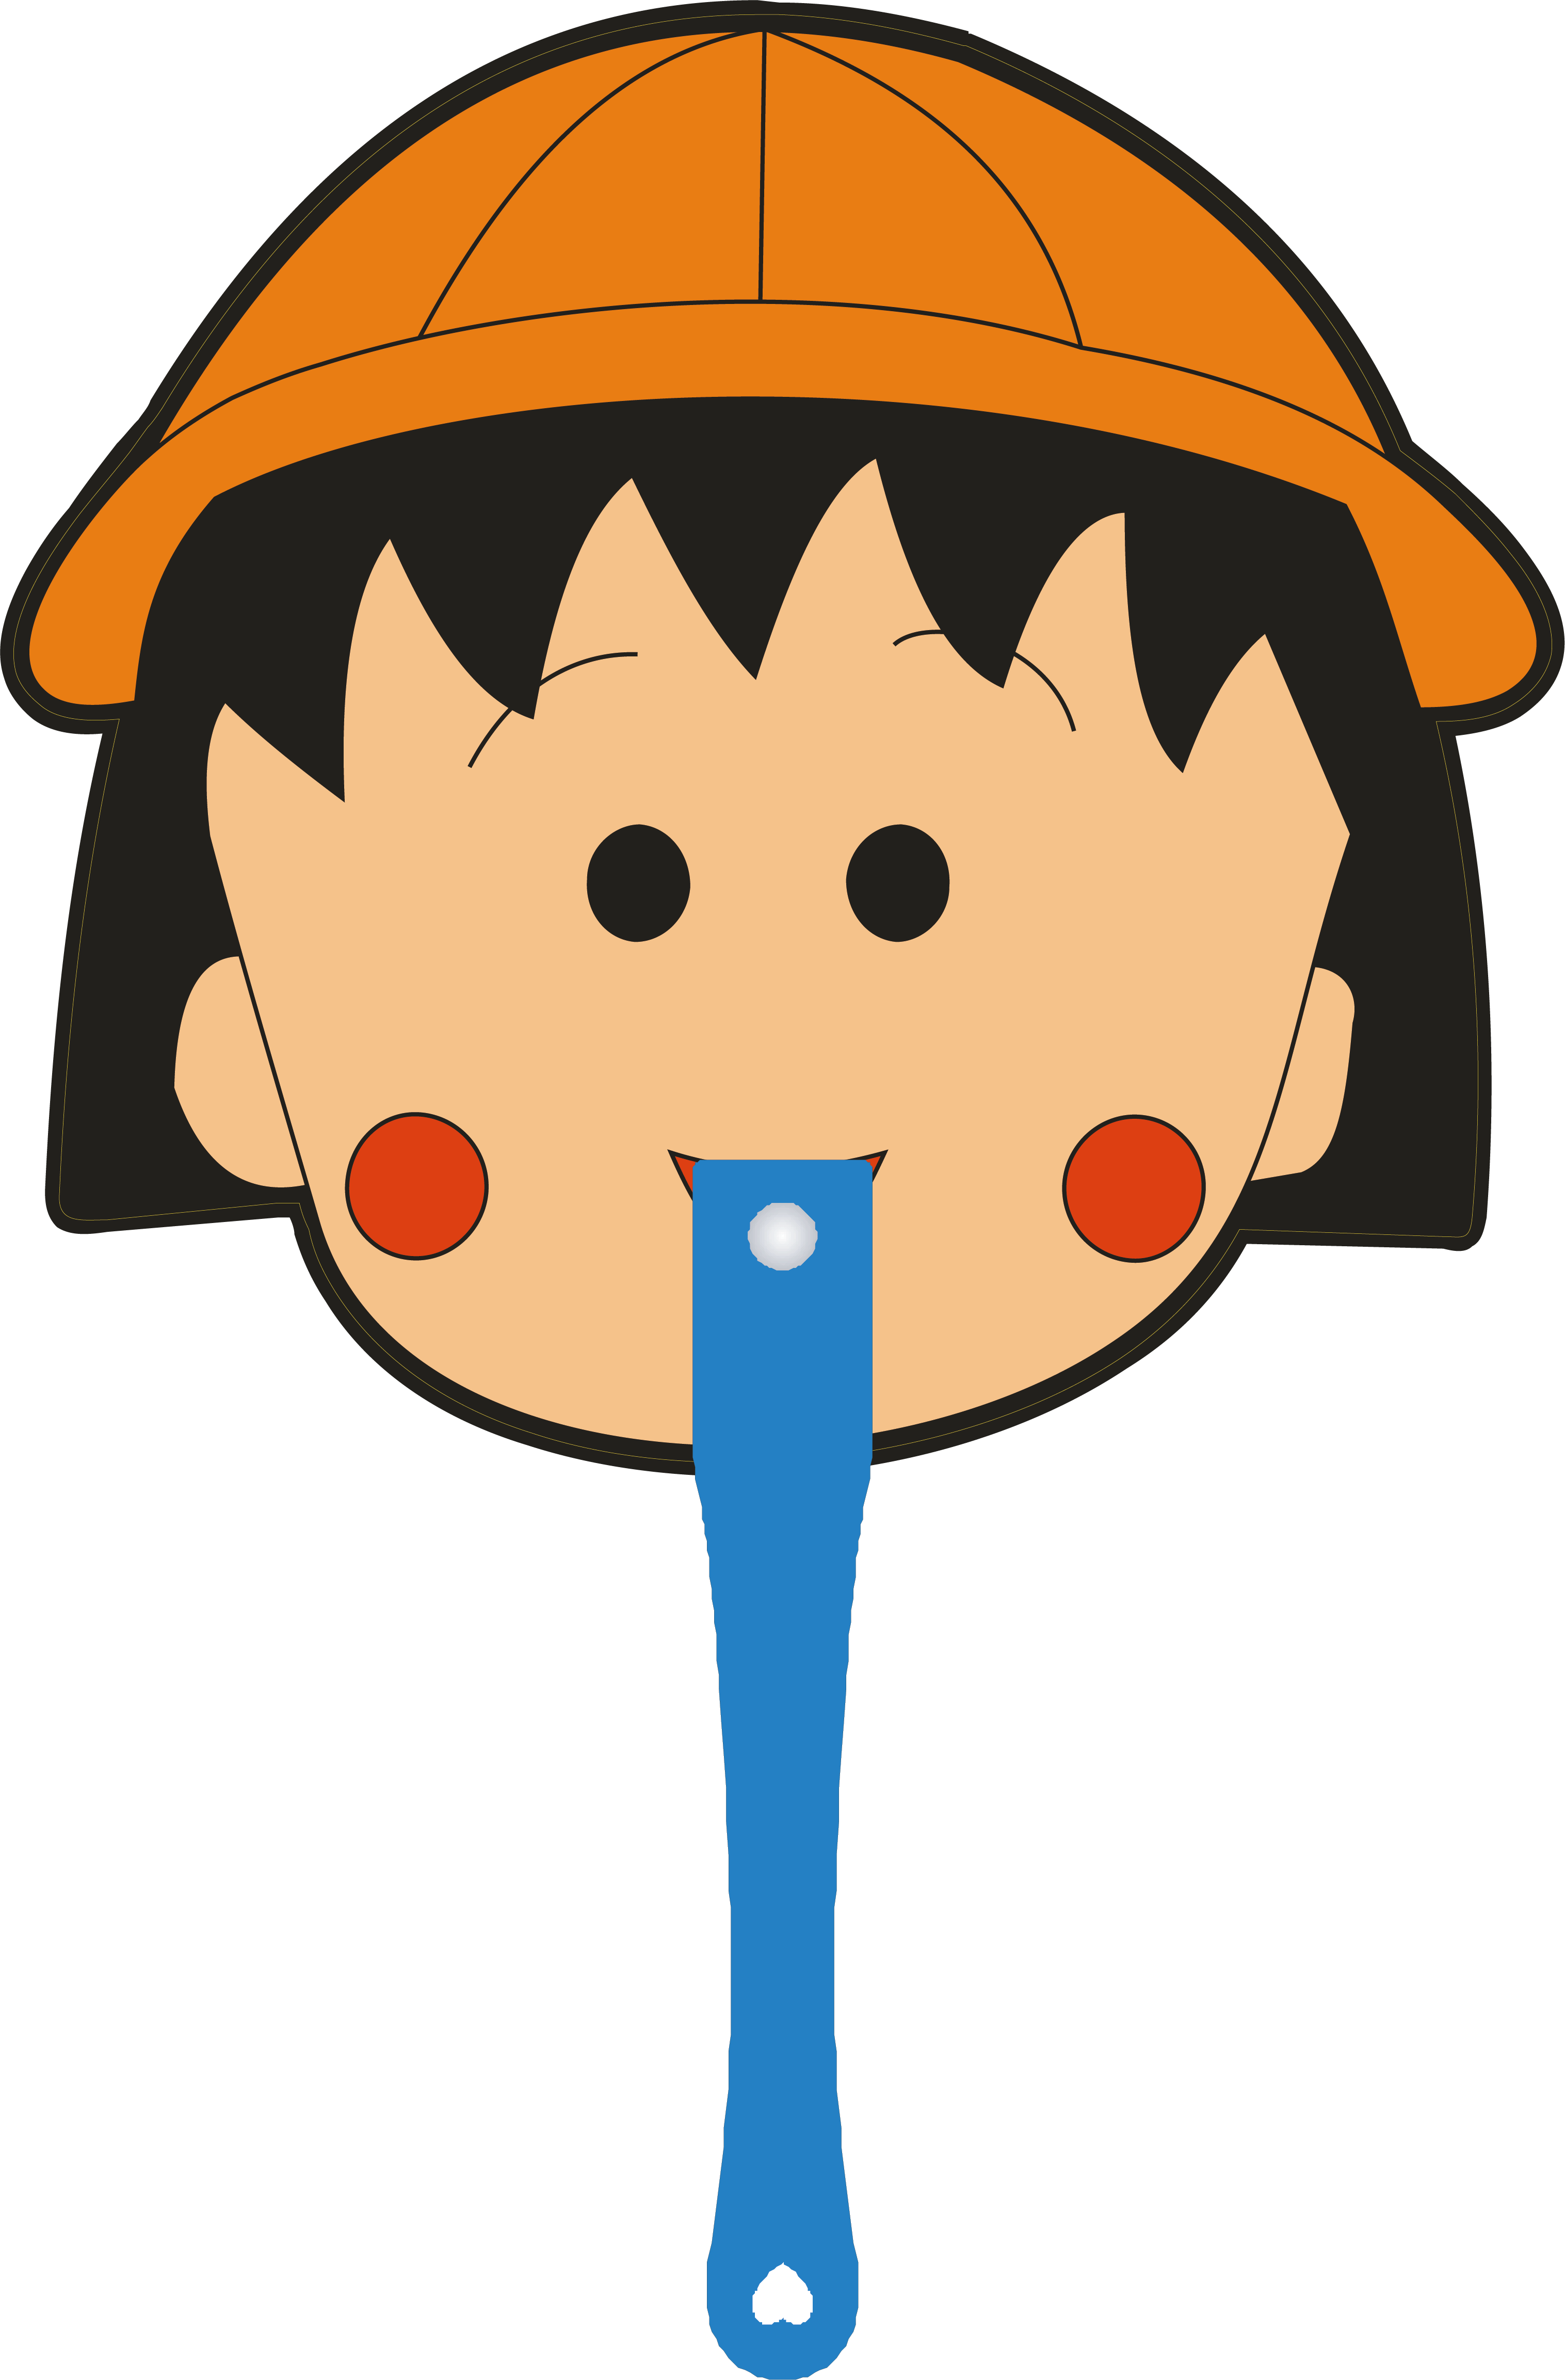 Chibi maruko chan cartoon. Clipart balloon head